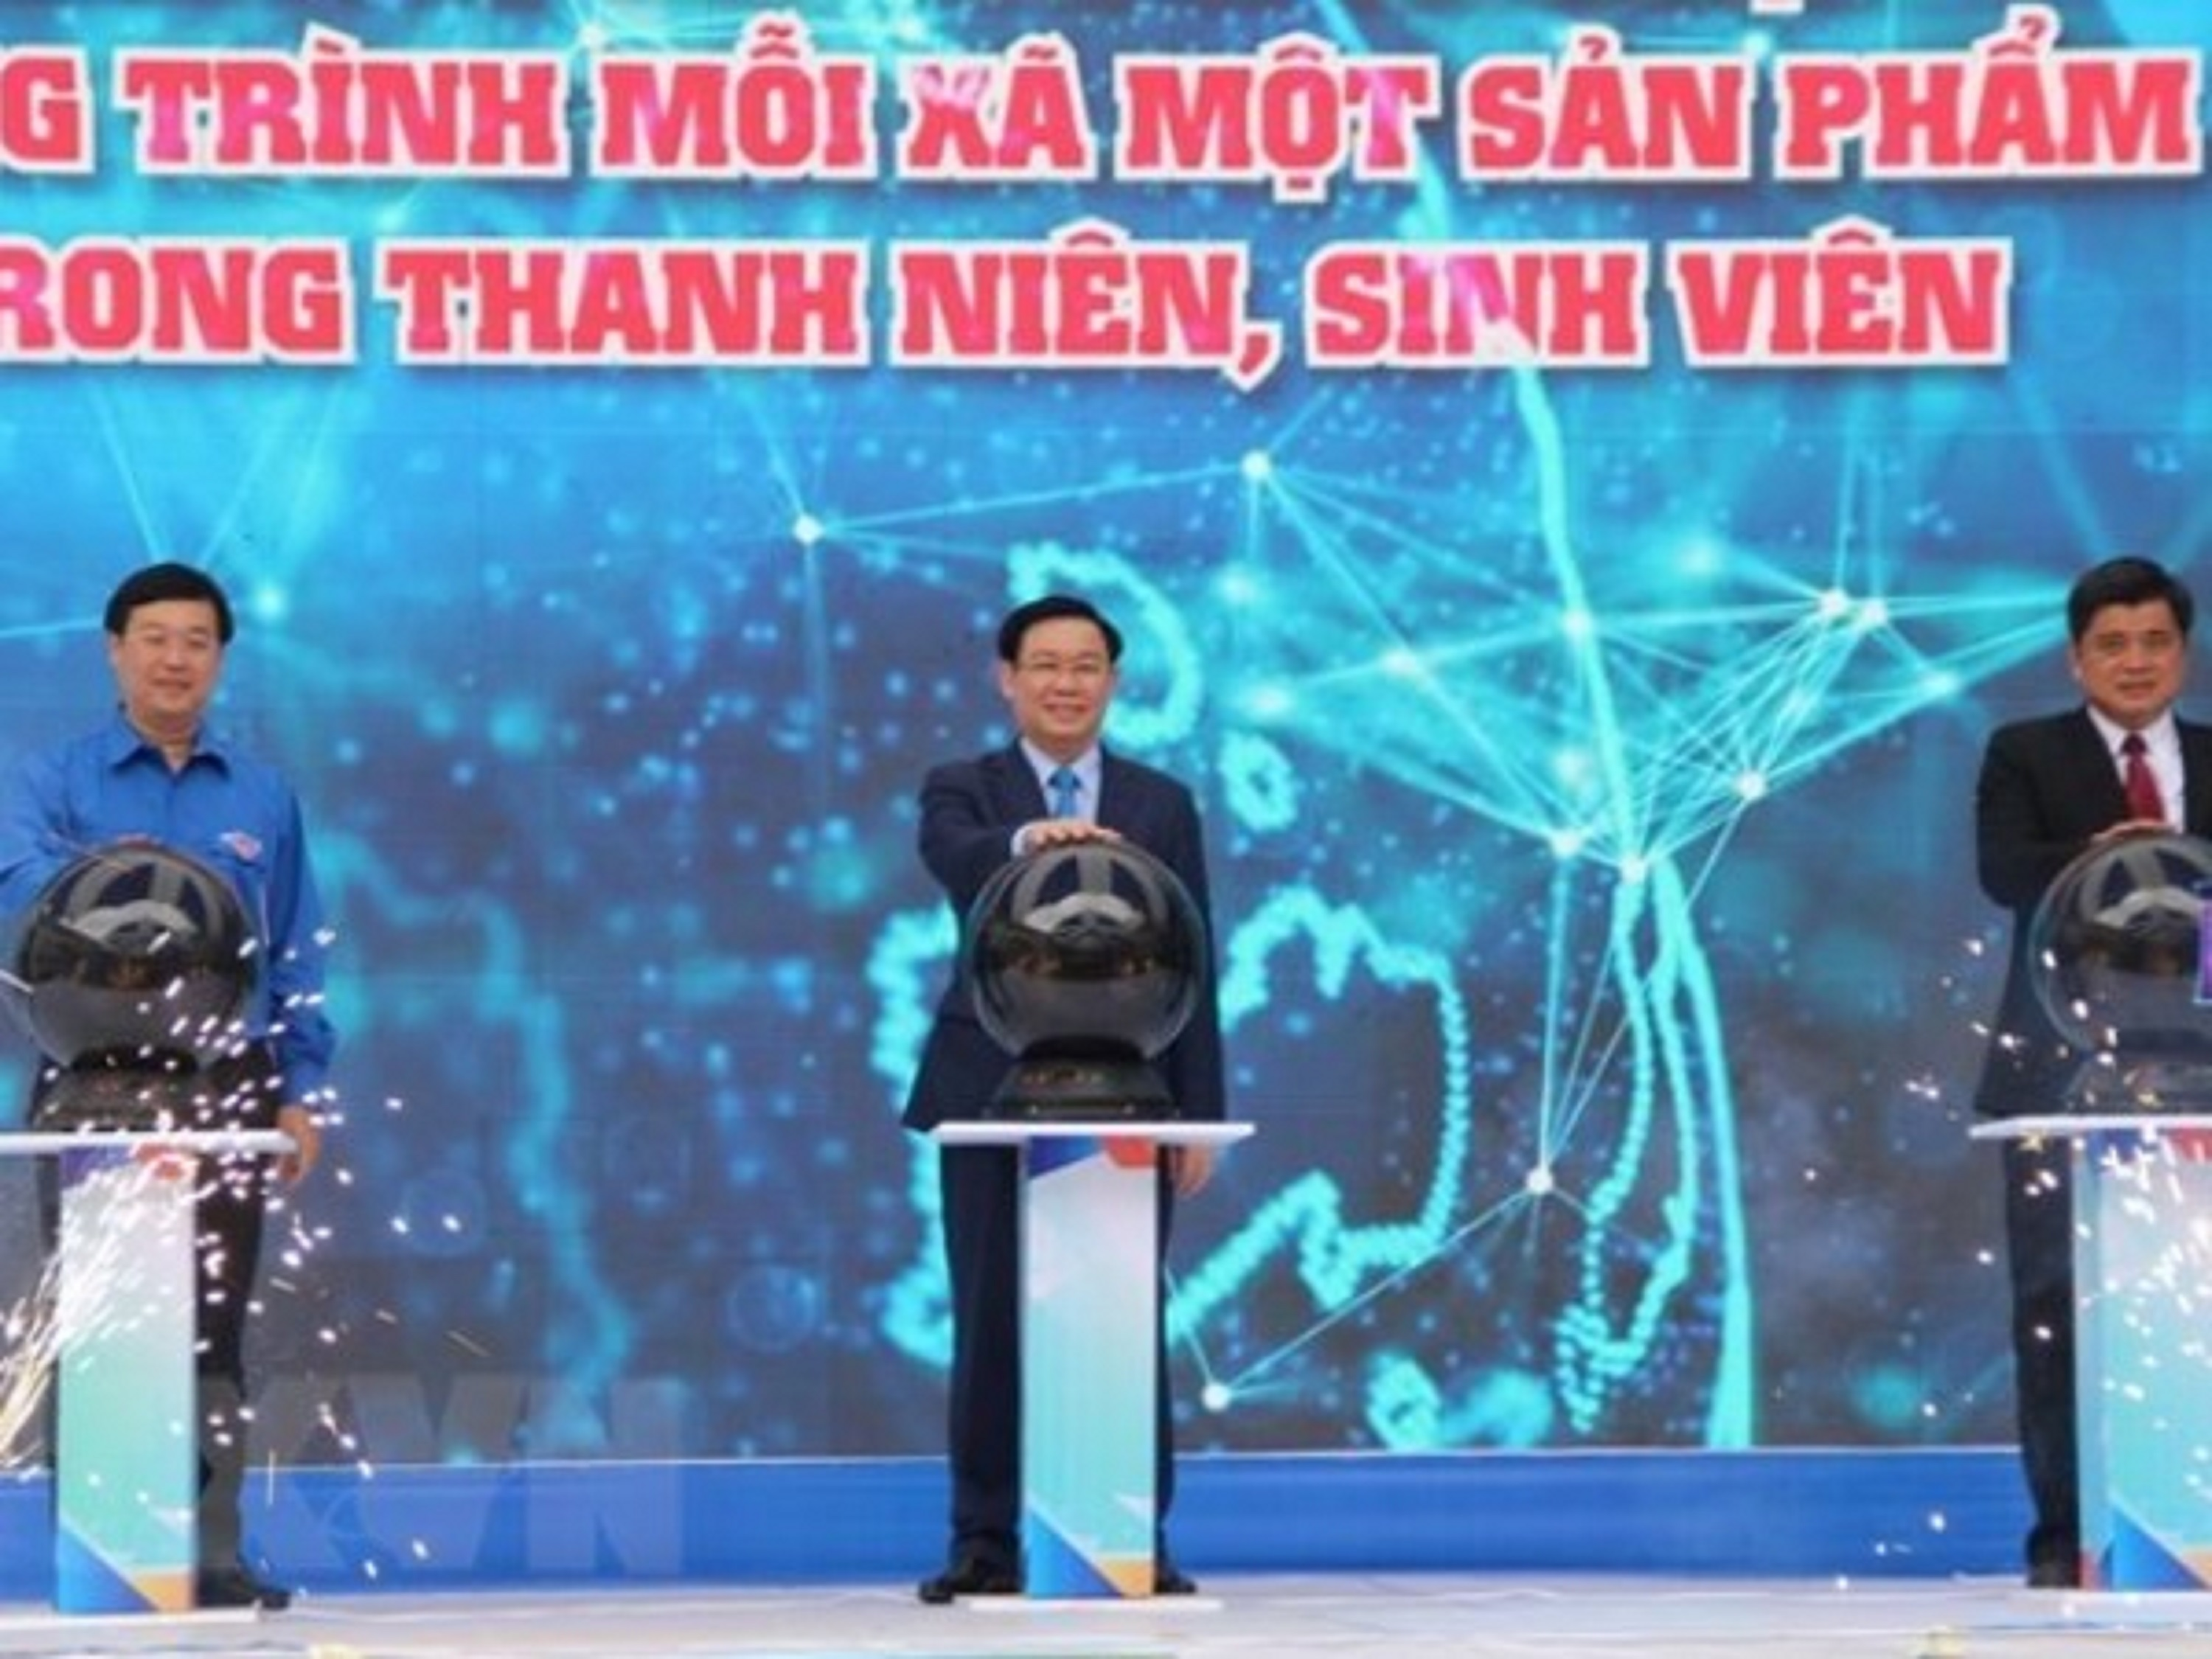 Start-up agriculture campaign launched in Ho Chi Minh City